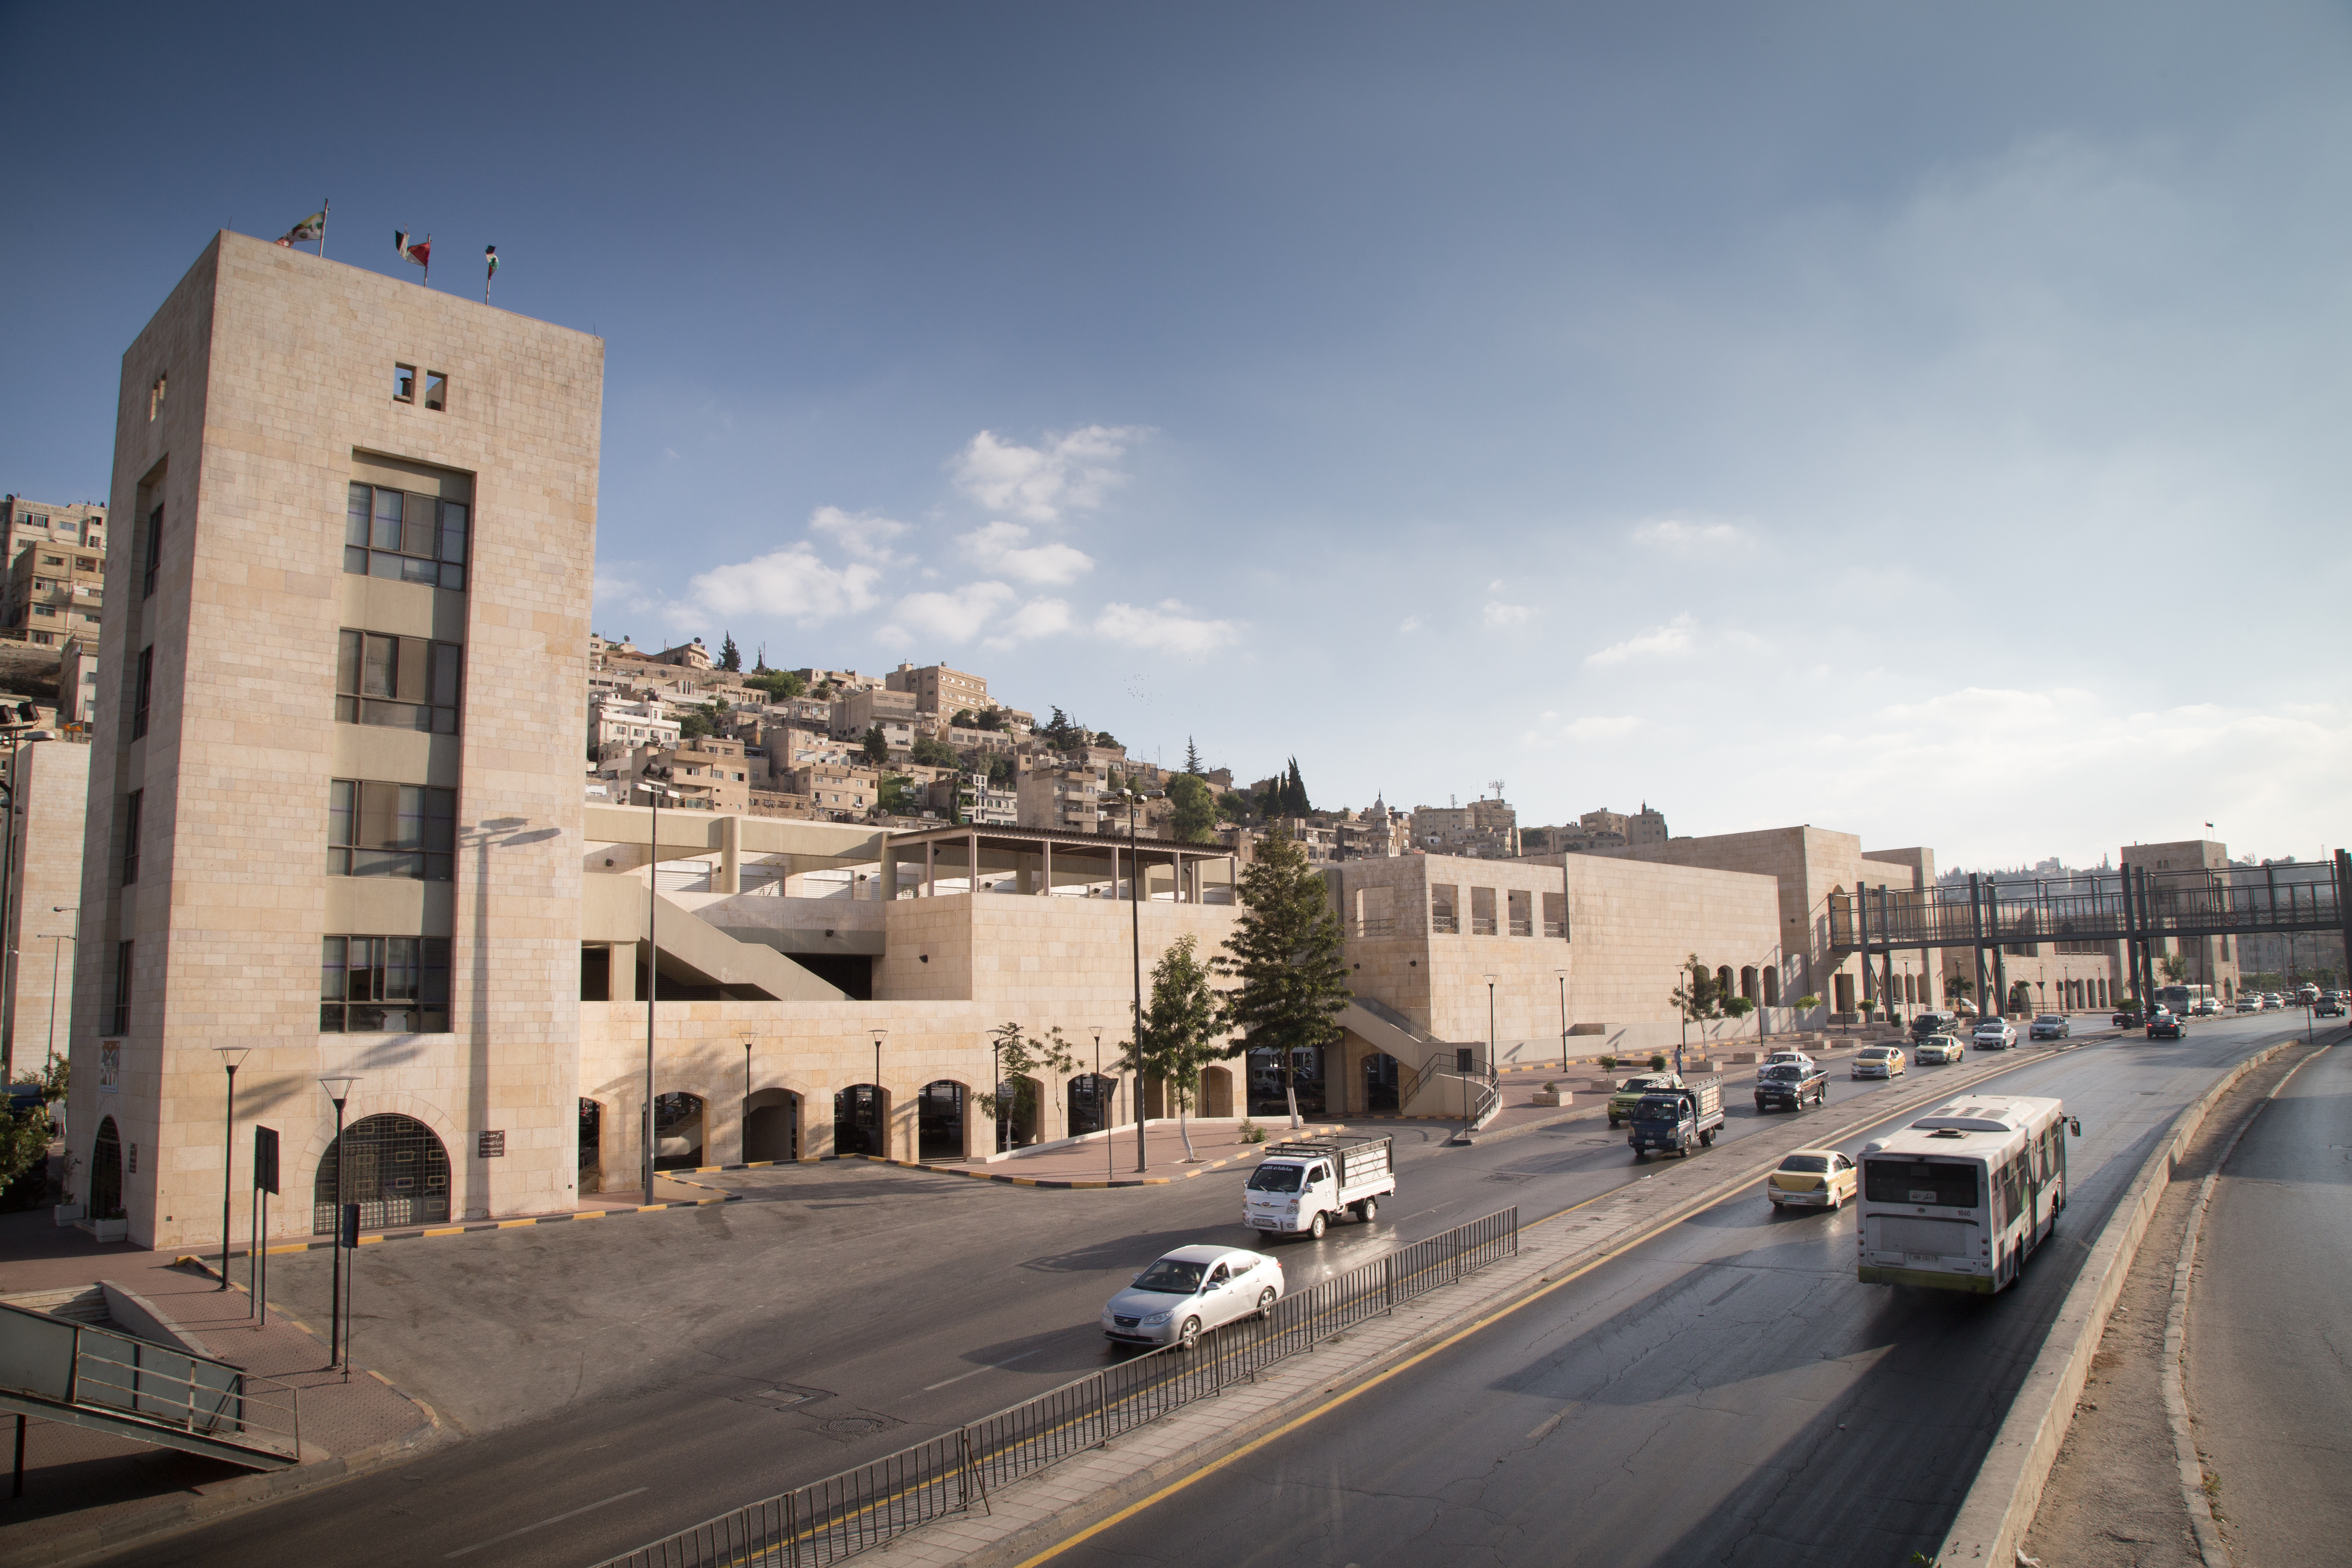 The Raghadan Tourist Terminal, designed by Architects Ayman Zuaiter and Khaled Jadallah